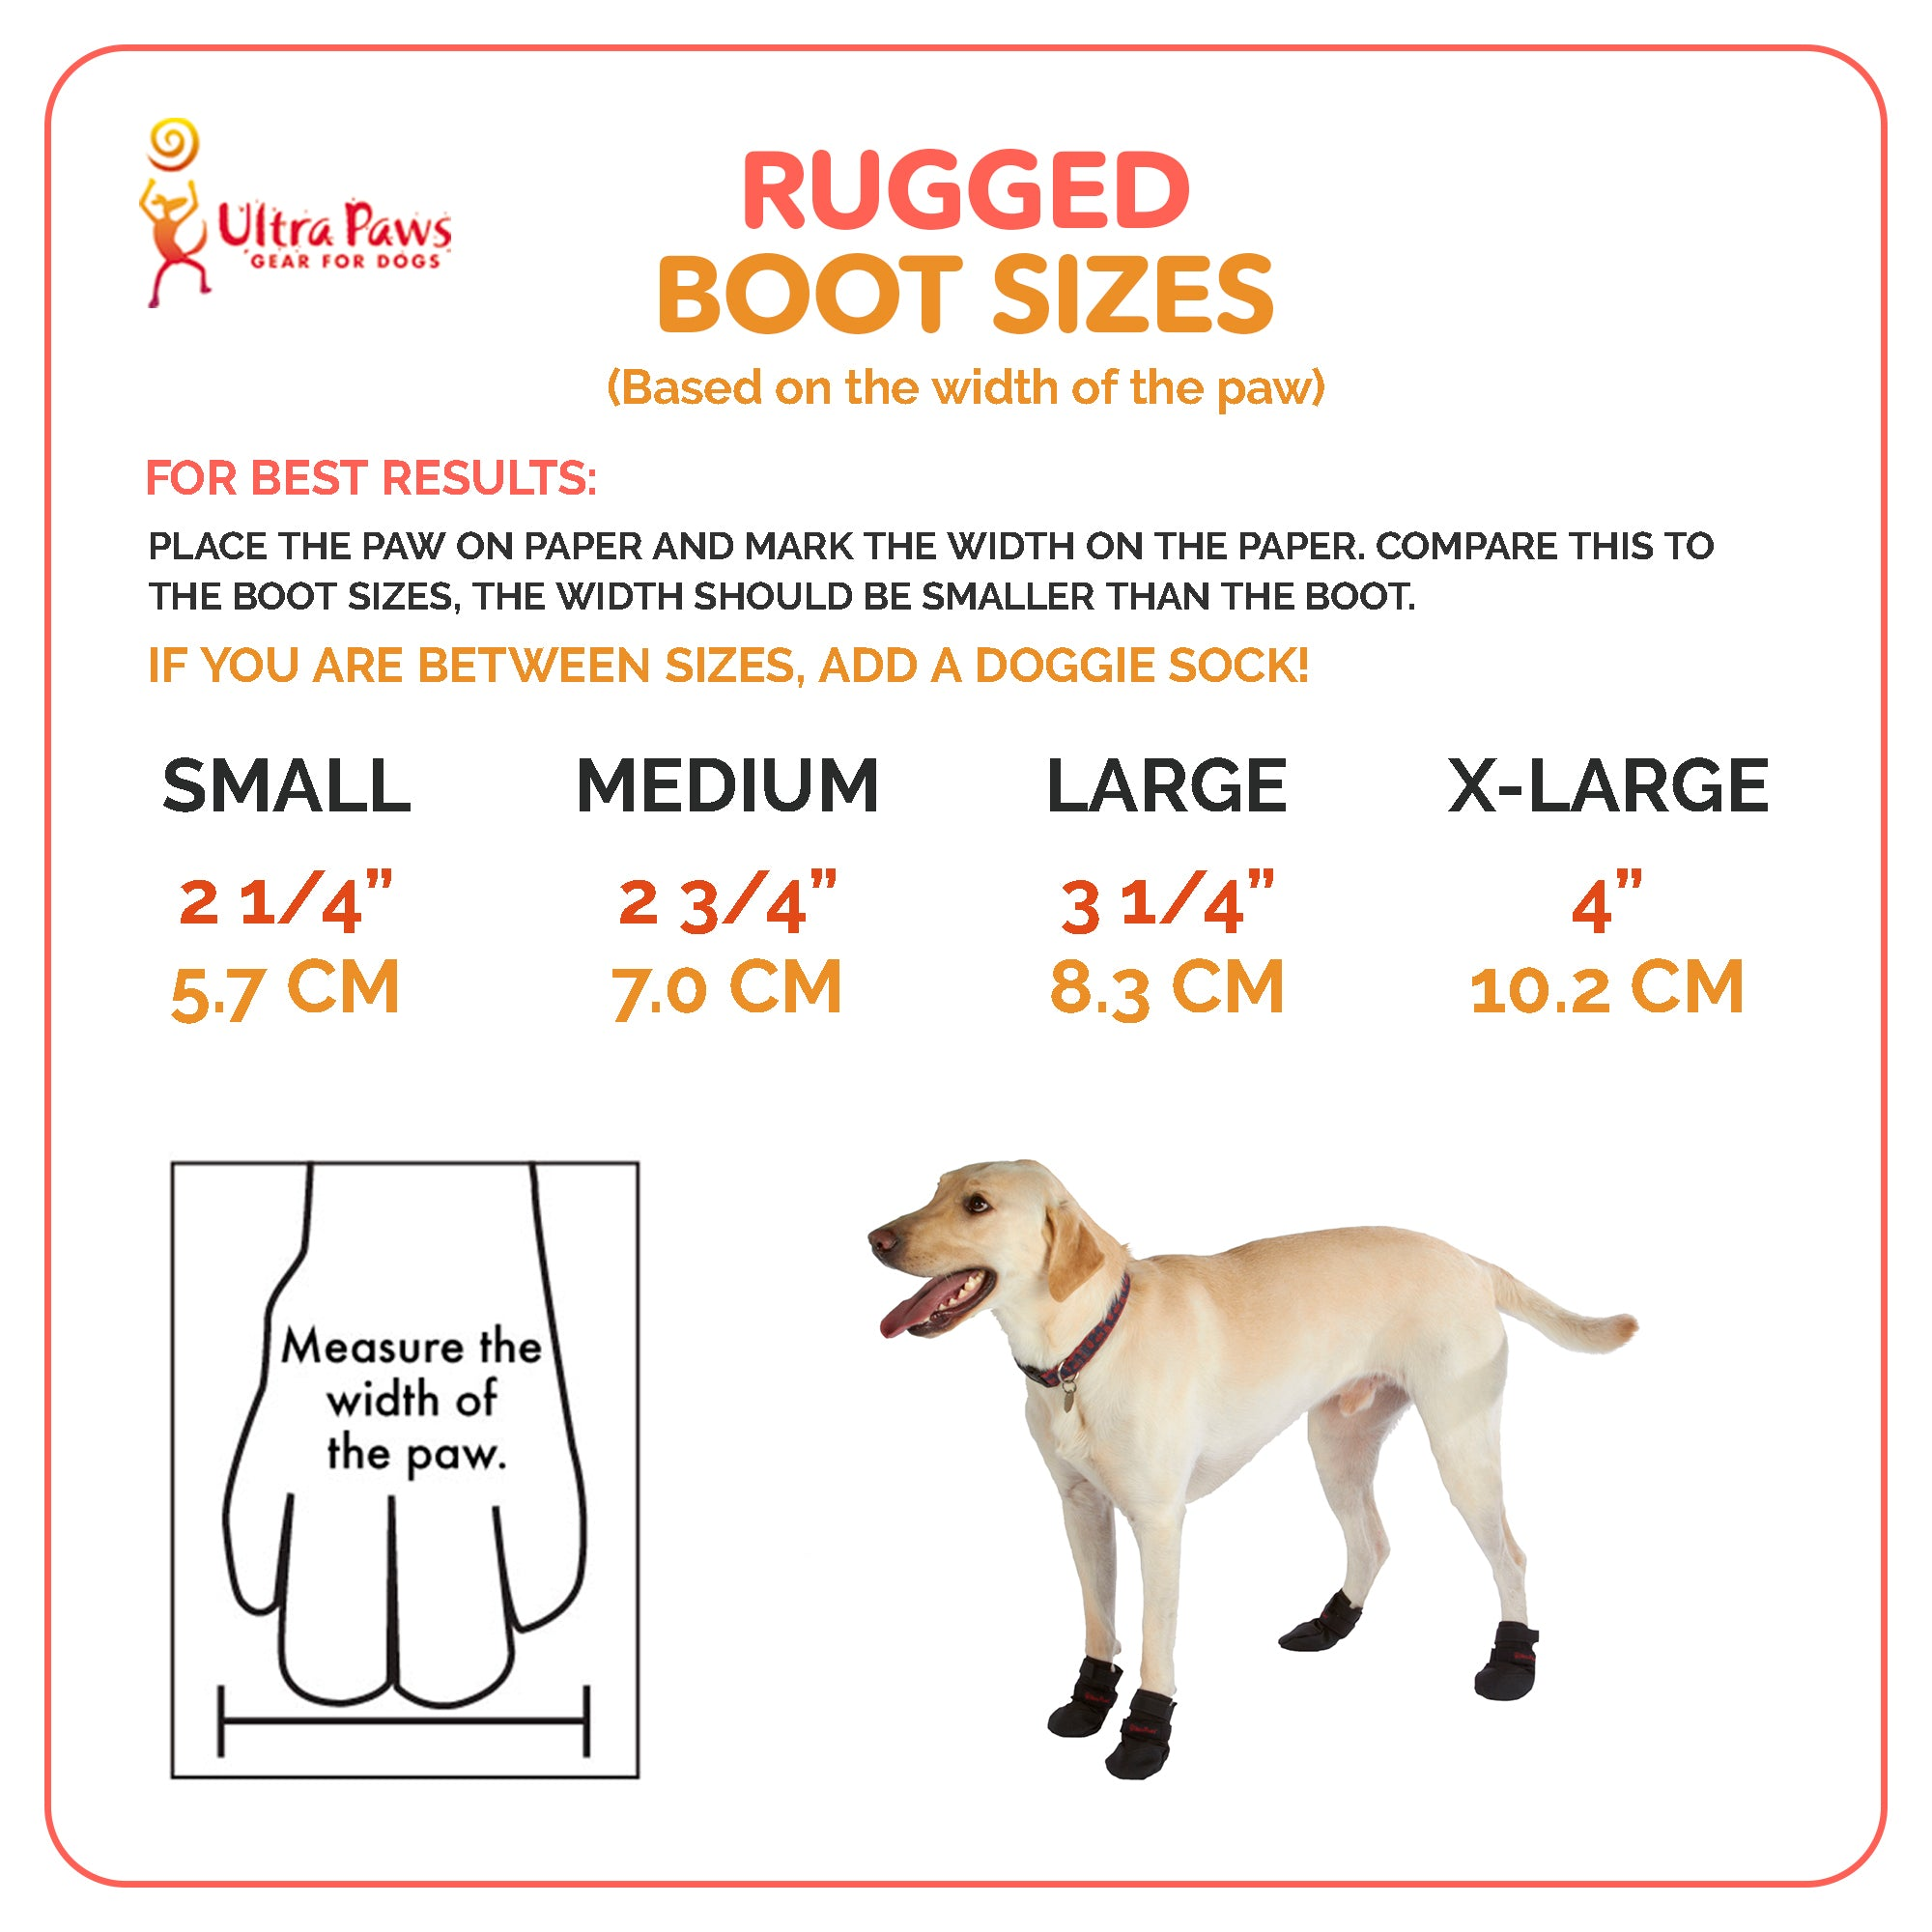 Ultra Paws Rugged Dog Boots Sizing Chart